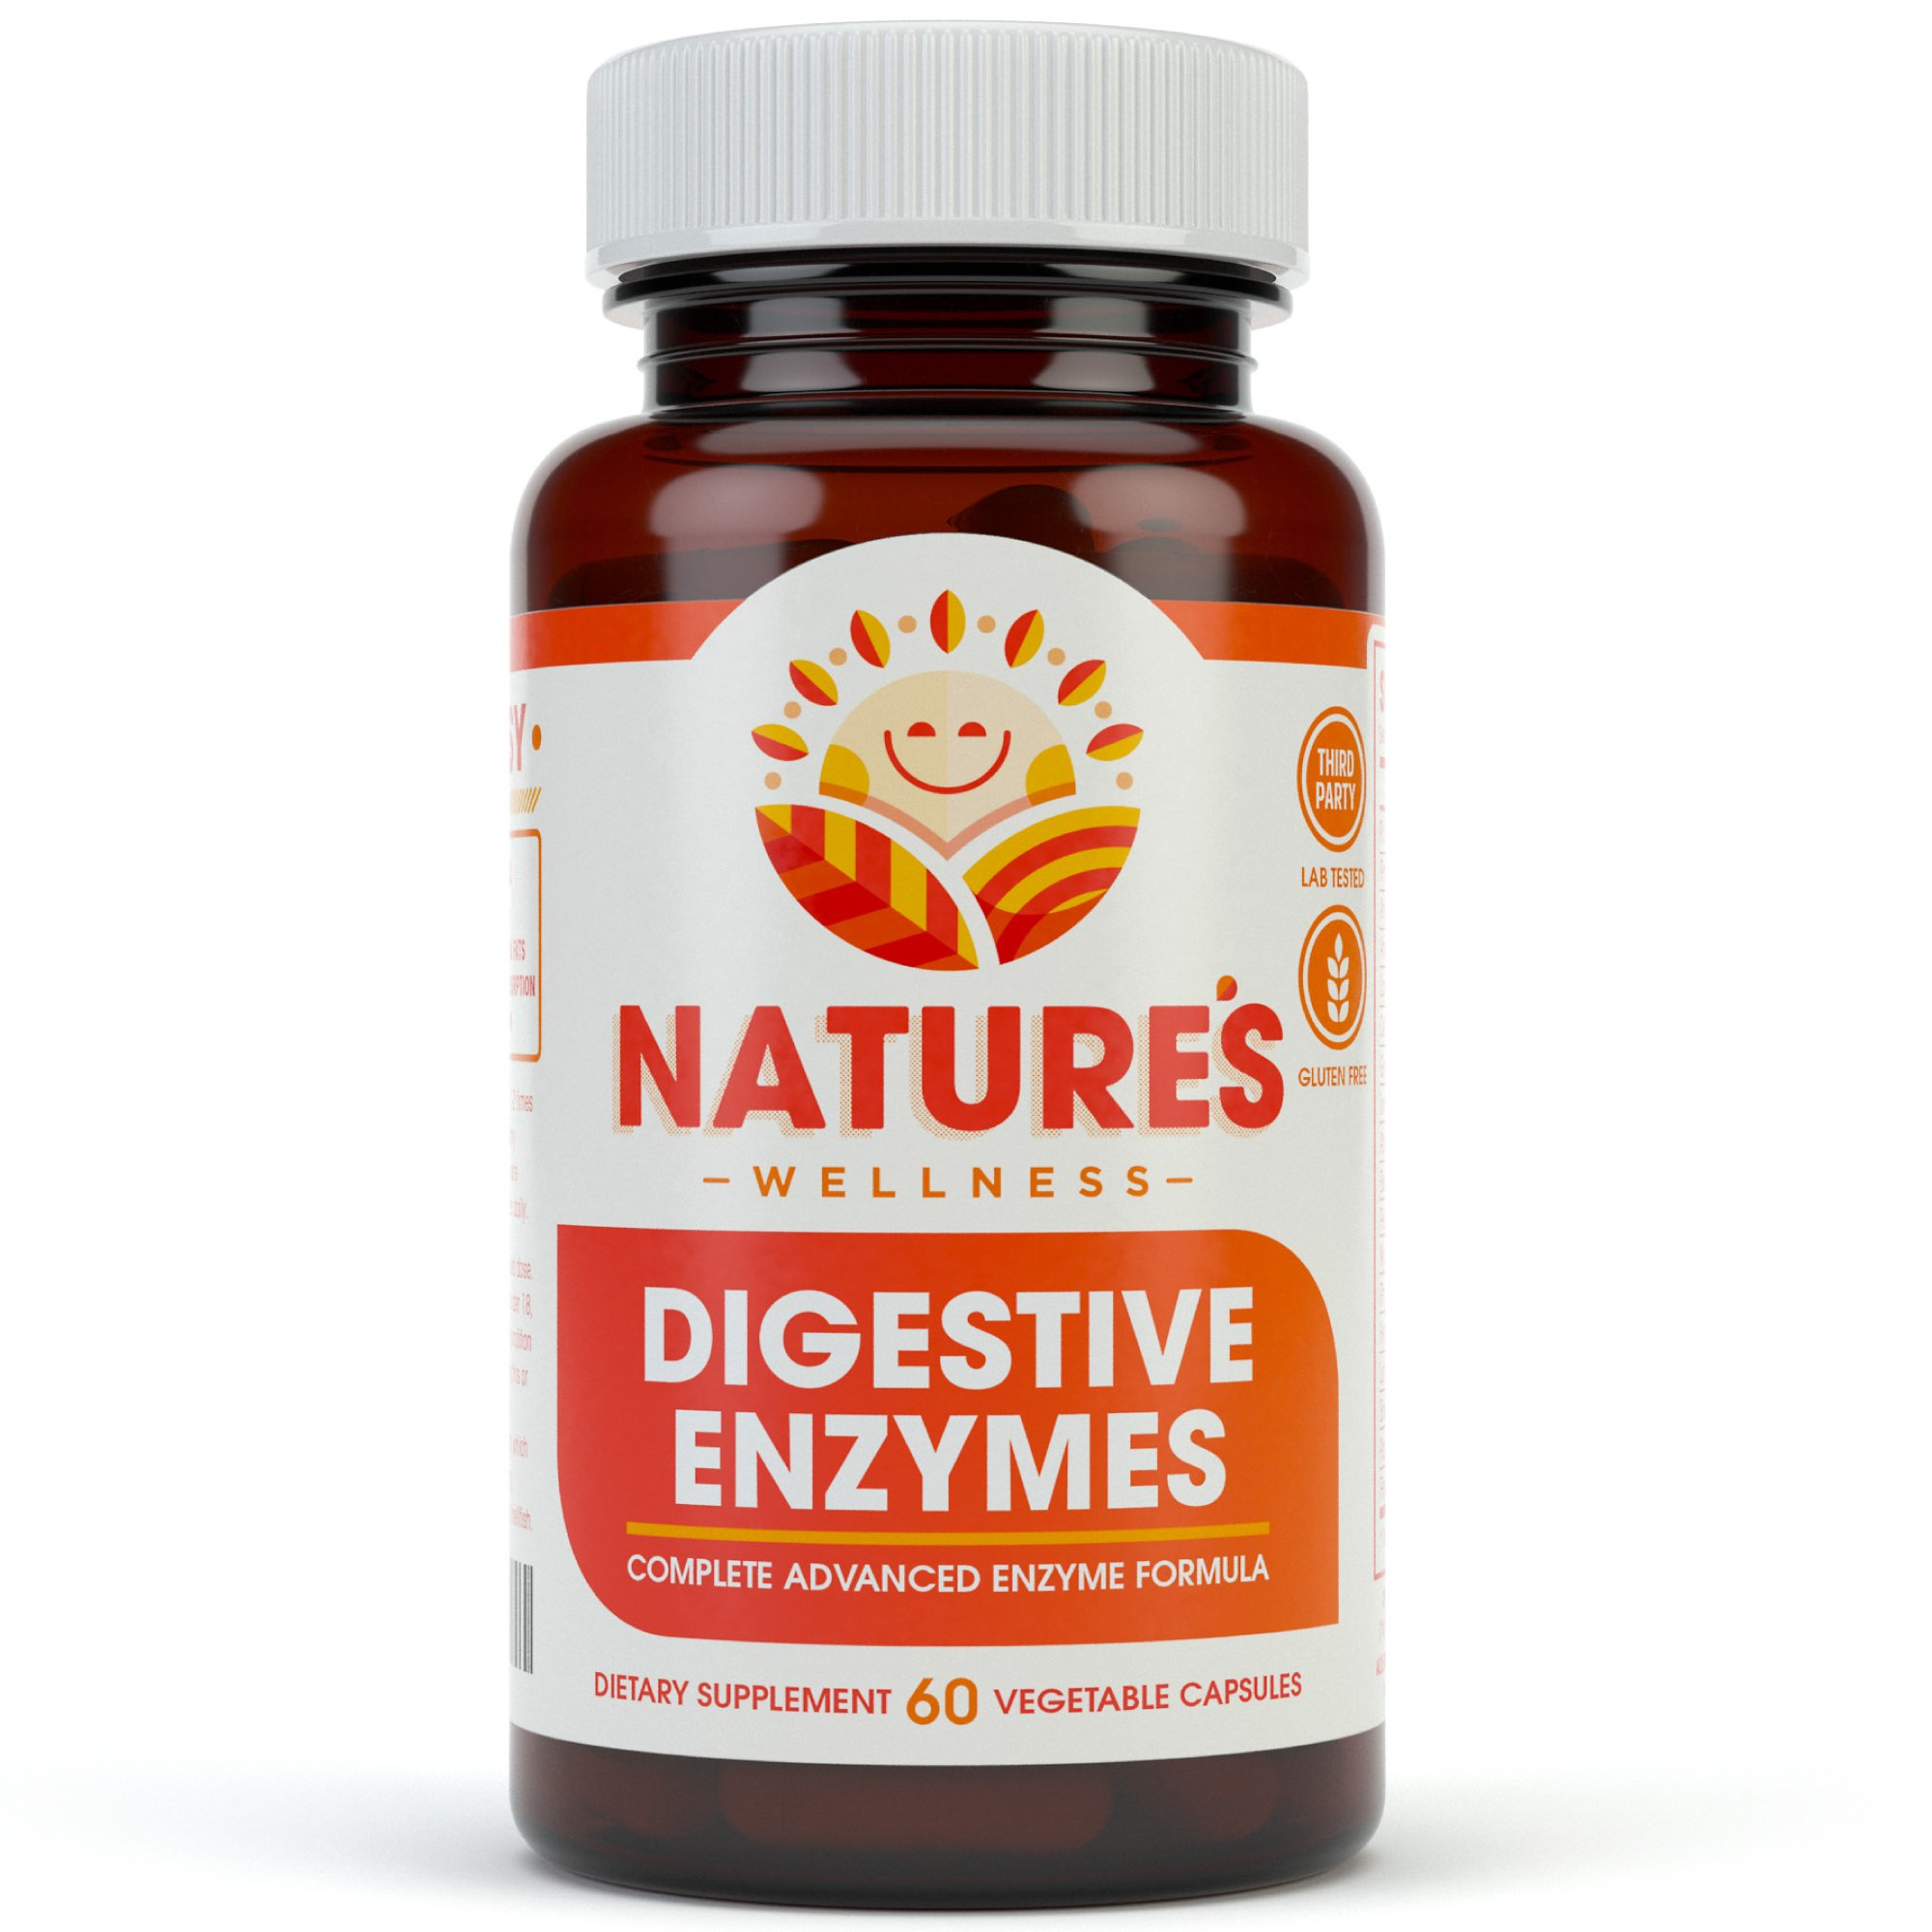 Digestive Enzymes Complete - Advanced Multi Enzyme Supplement for Better Digestion & Absorption. Help Gas Relief, Discomfort, Bloating, IBS, Gluten & Lactose Intolerance by Natures Wellness